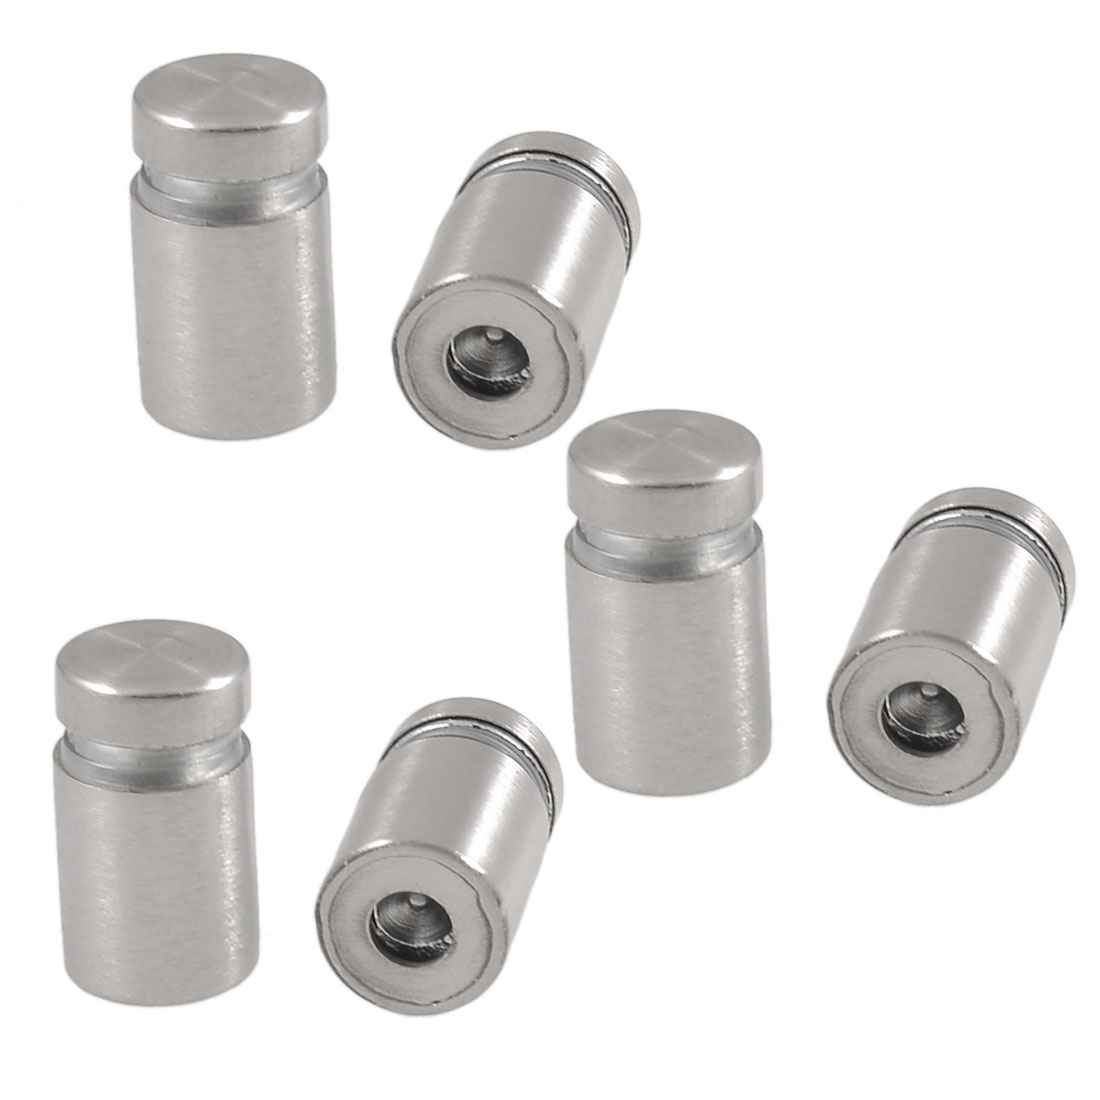 Advertising Board Billboard Sheet Mount Nails Bolts 12mm x 22mm 6 Pcs